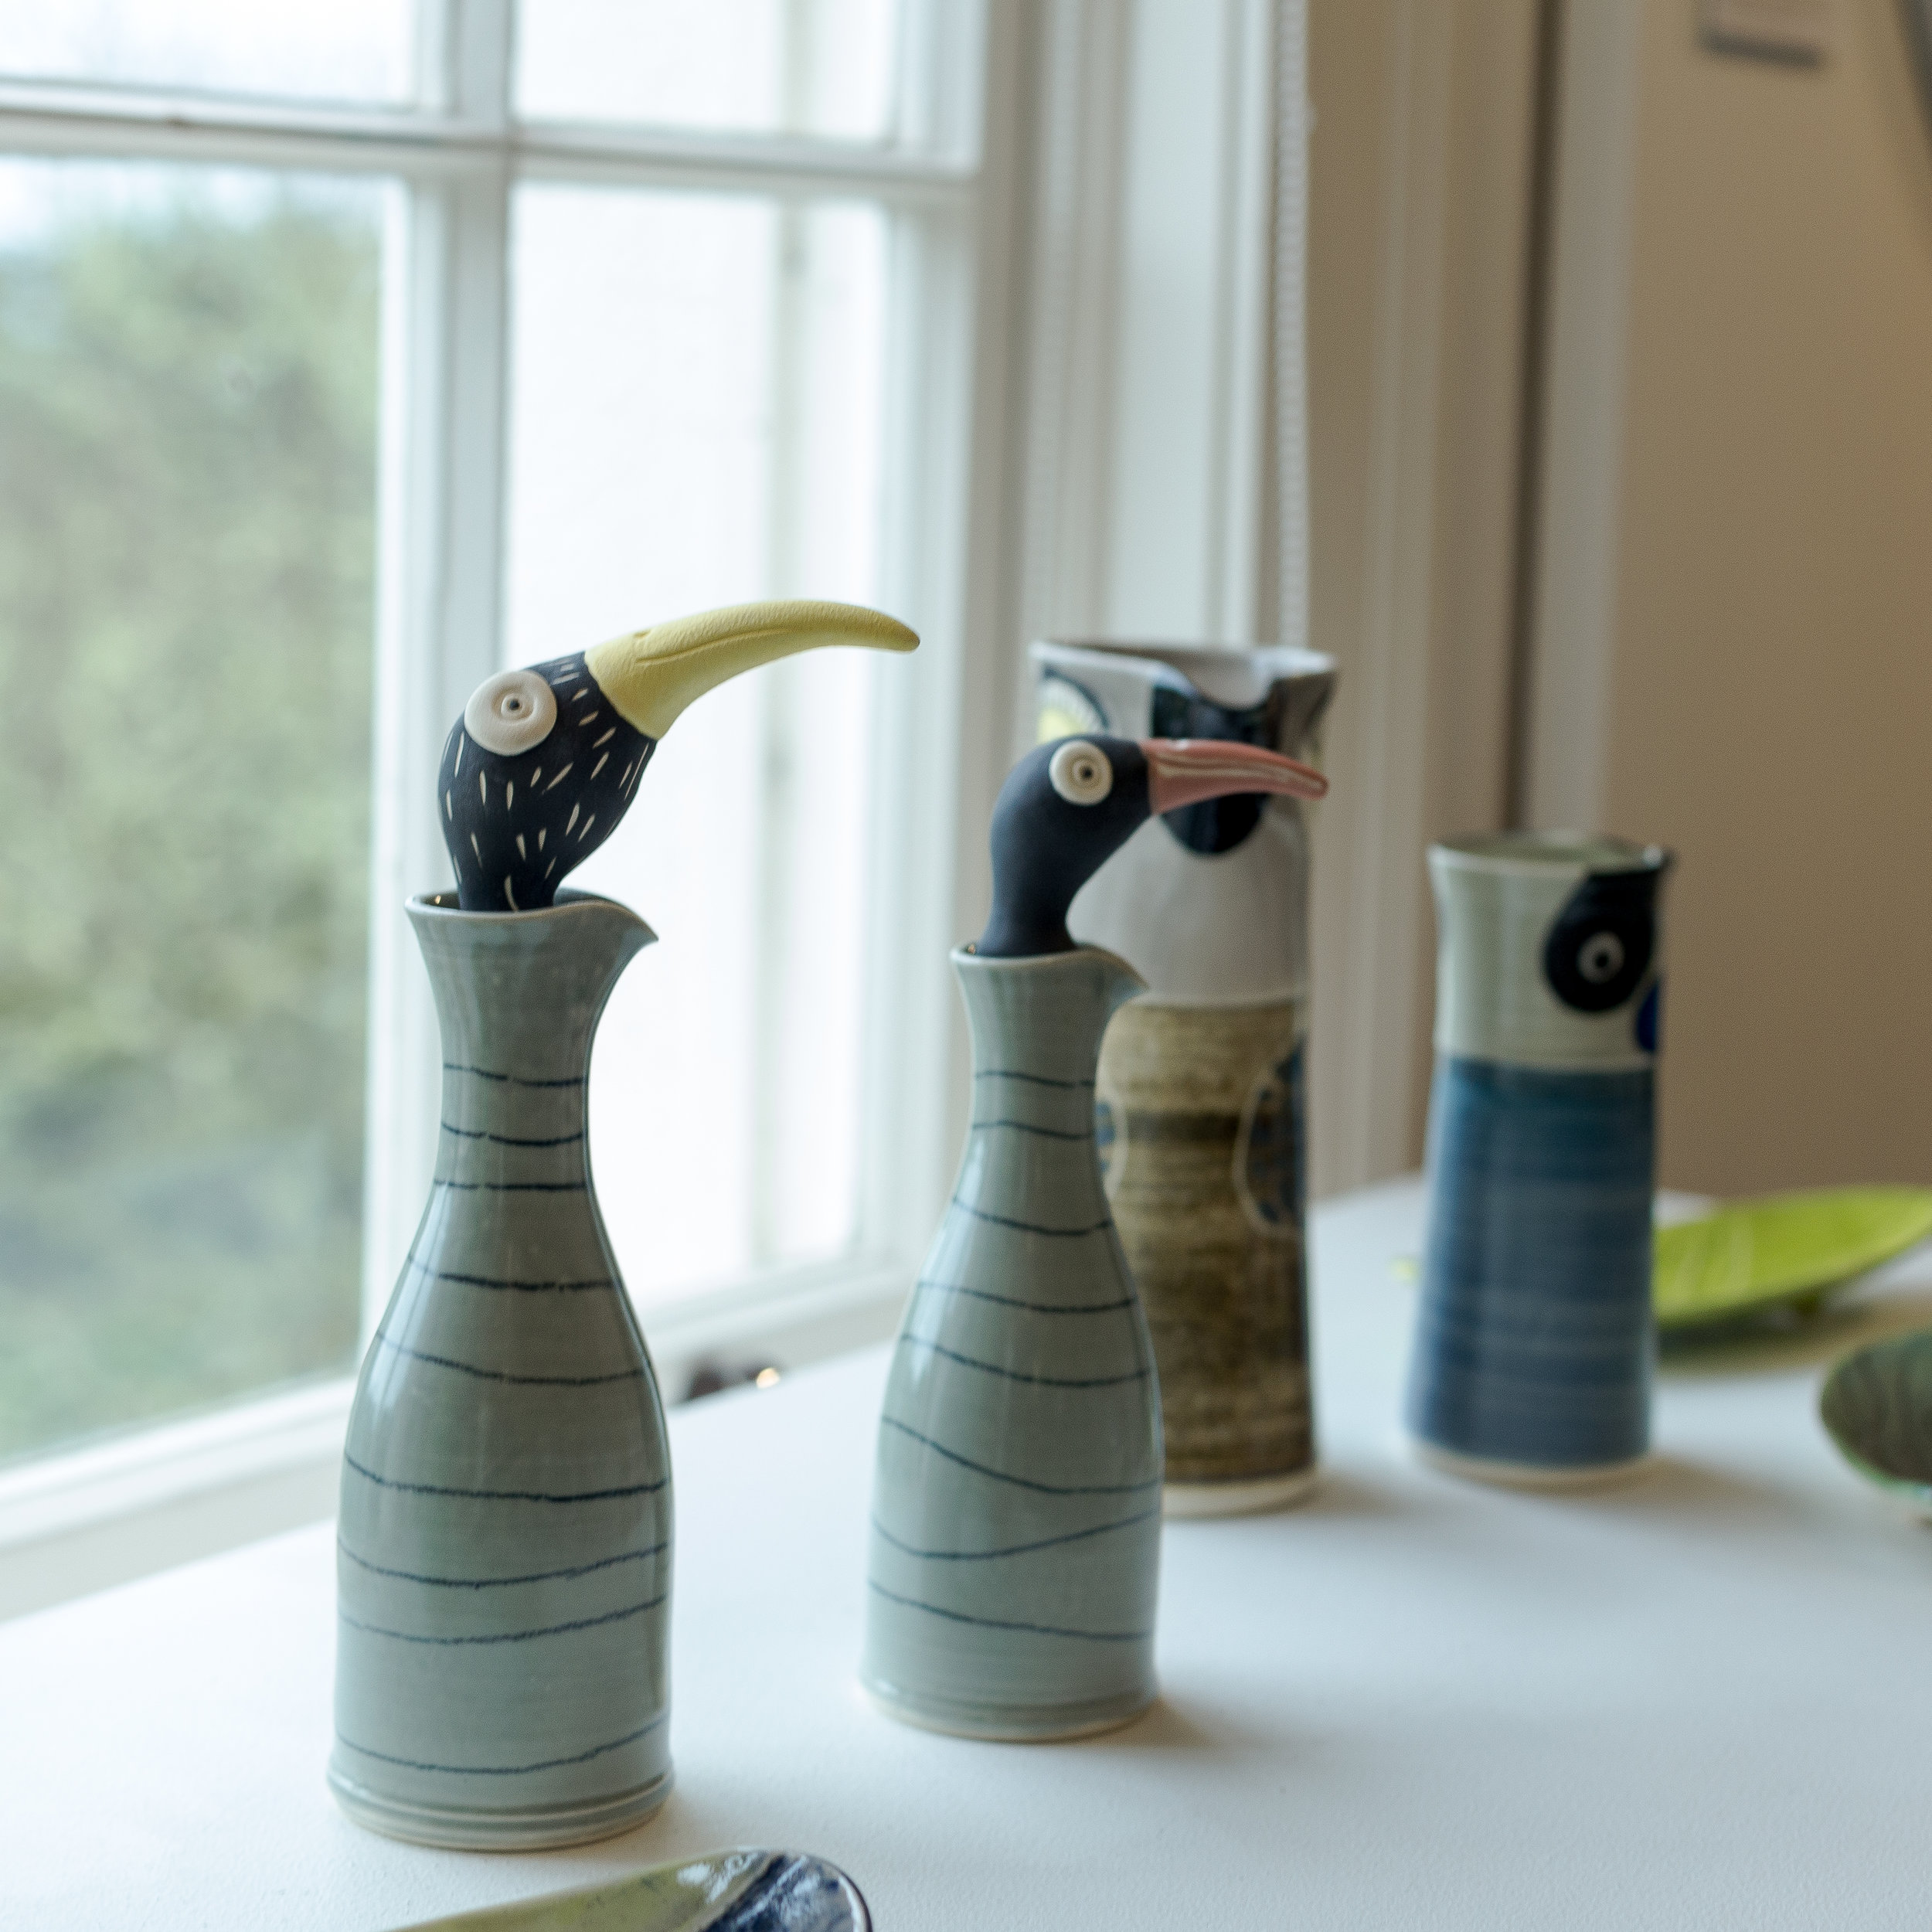 Ceramic Art at The Upstairs Gallery